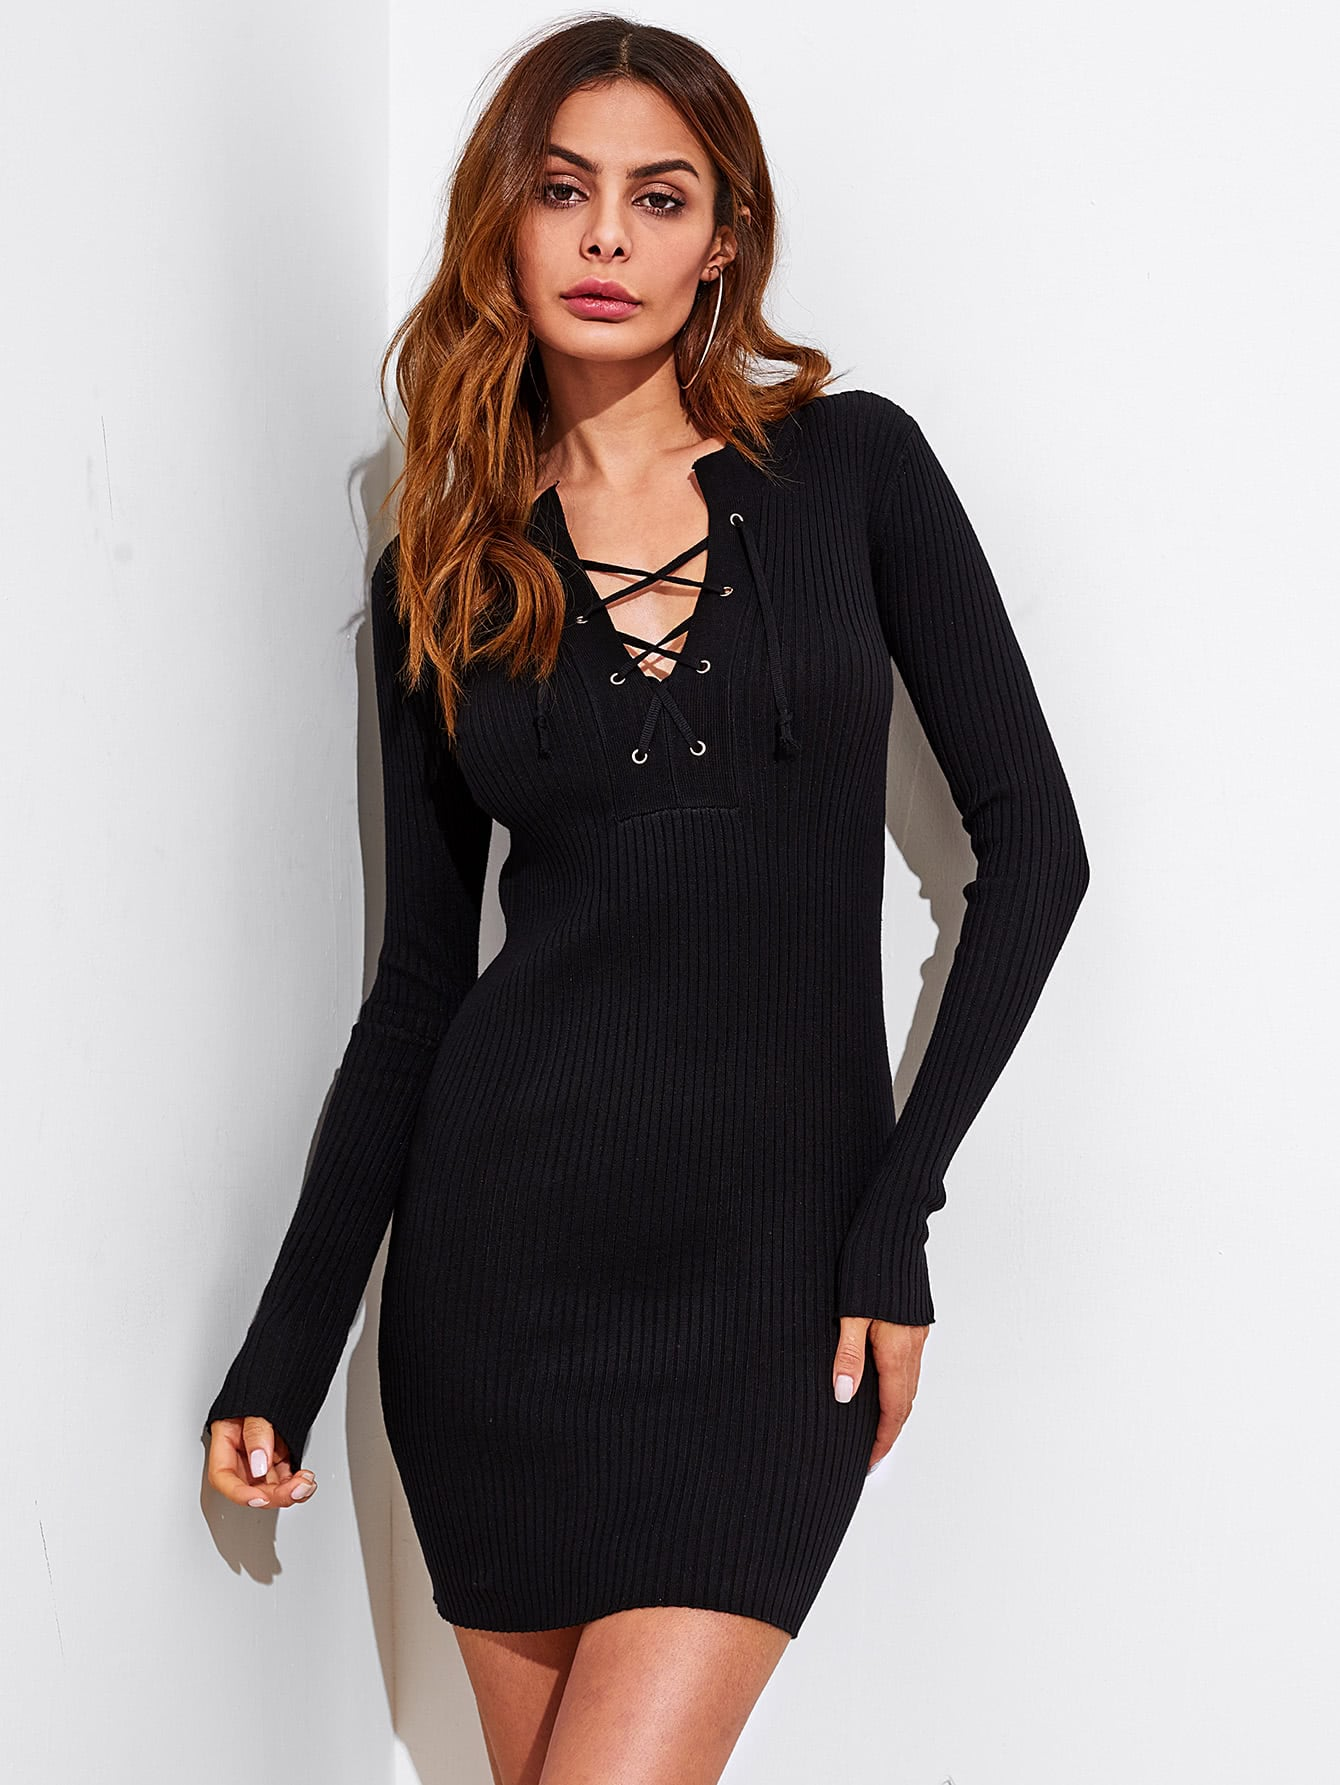 Eyelet Lace Up V Neck Ribbed Trim Sweater Dress sheer lace panel plus size leggings